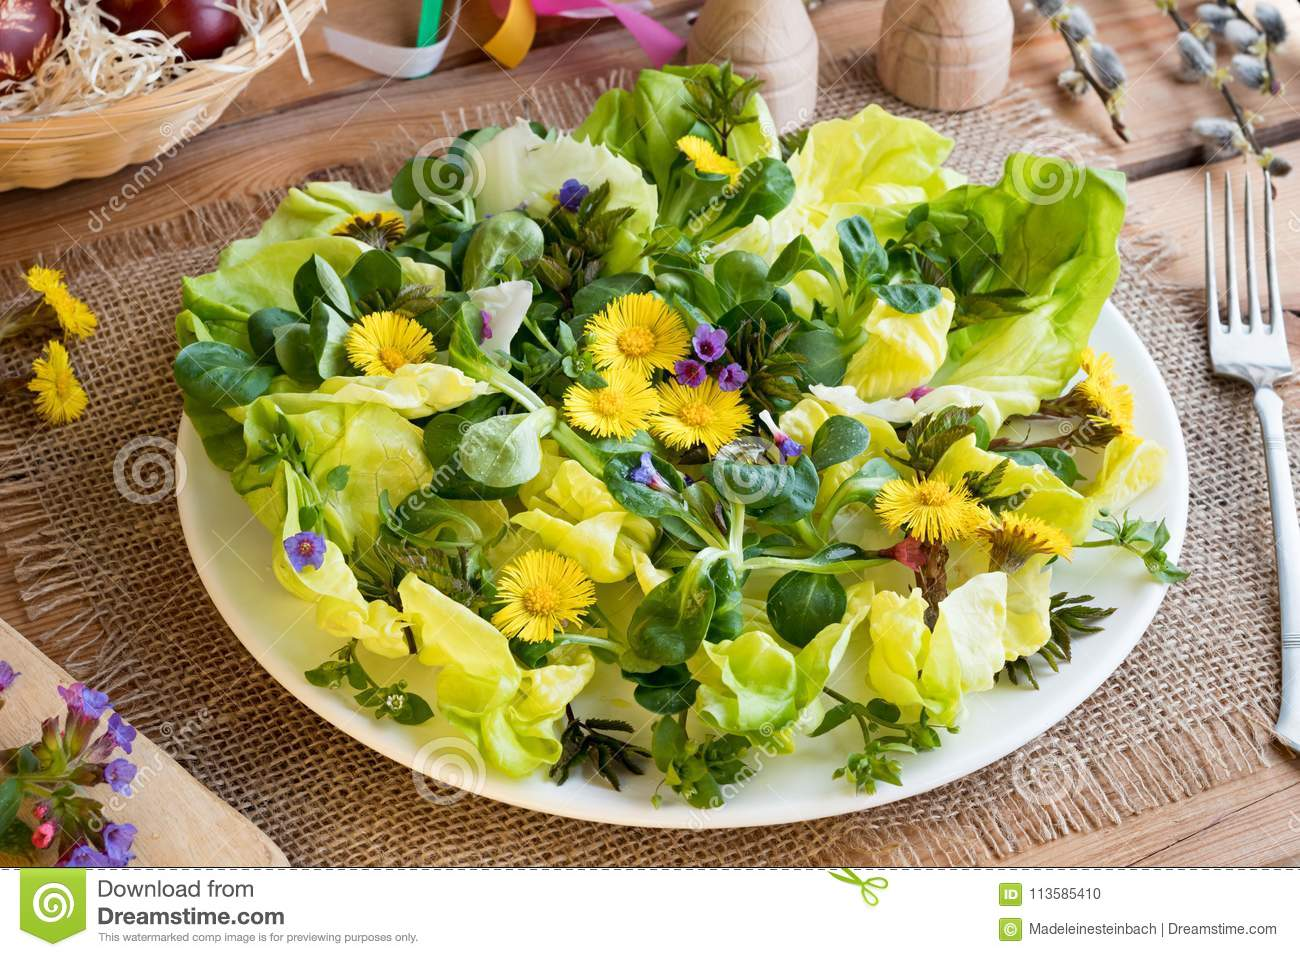 Salad with lettuce and wild edible plants